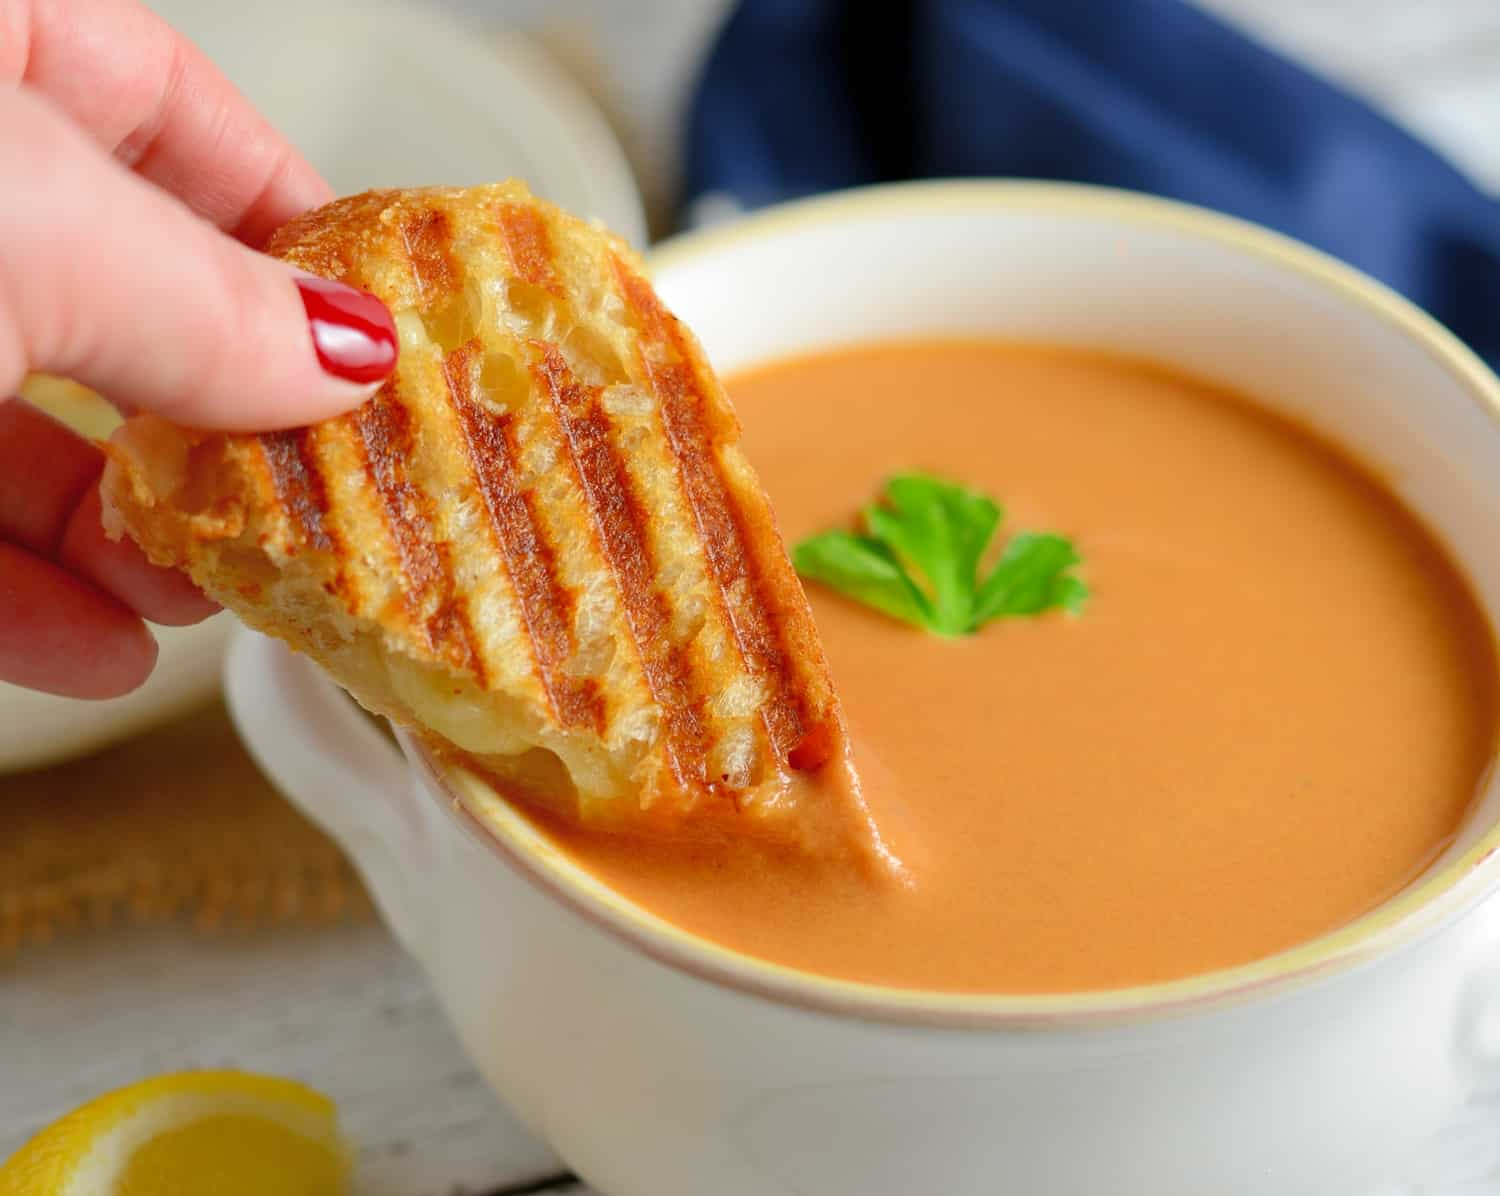 Creamy Tomato Soup - Rich and creamy, full of flavor from roasted onions, tomatoes and garlic! Make-ahead and freezer friendly!